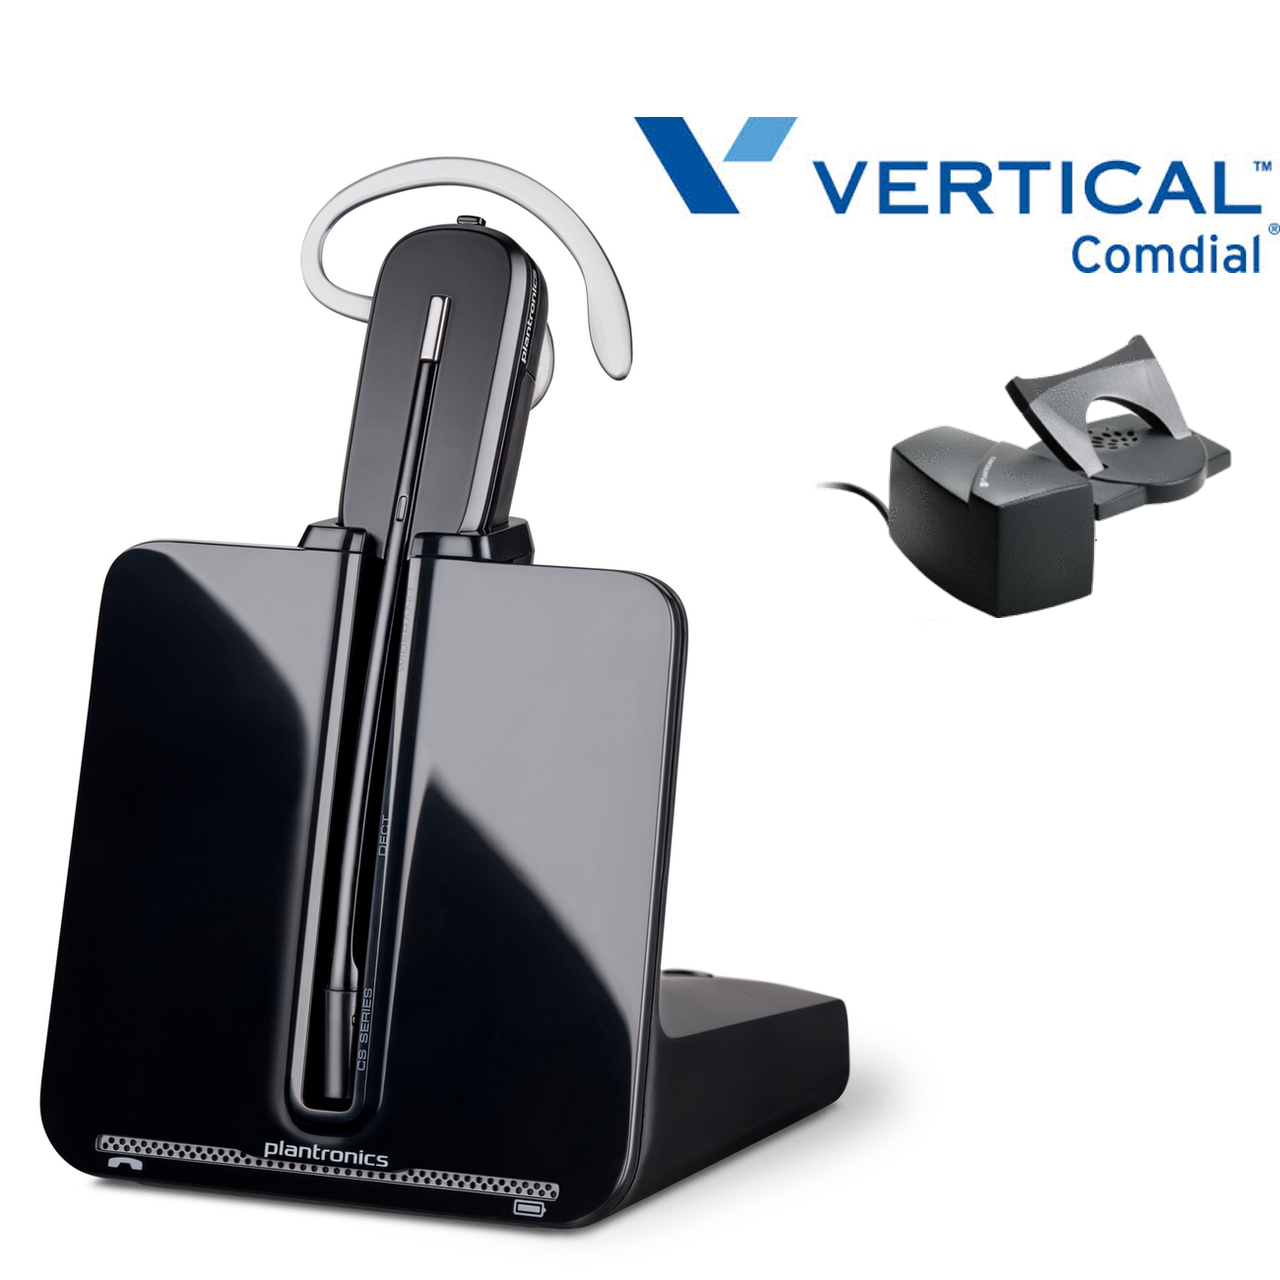 5be129c7925 Comdial Vertical Compatible Plantronics Wireless Headset CS540 Bundle |  Remote Answerer Included| For MBX, SBX IP Phones: 320, DX-80, 7260 | Edge  120, 700, ...